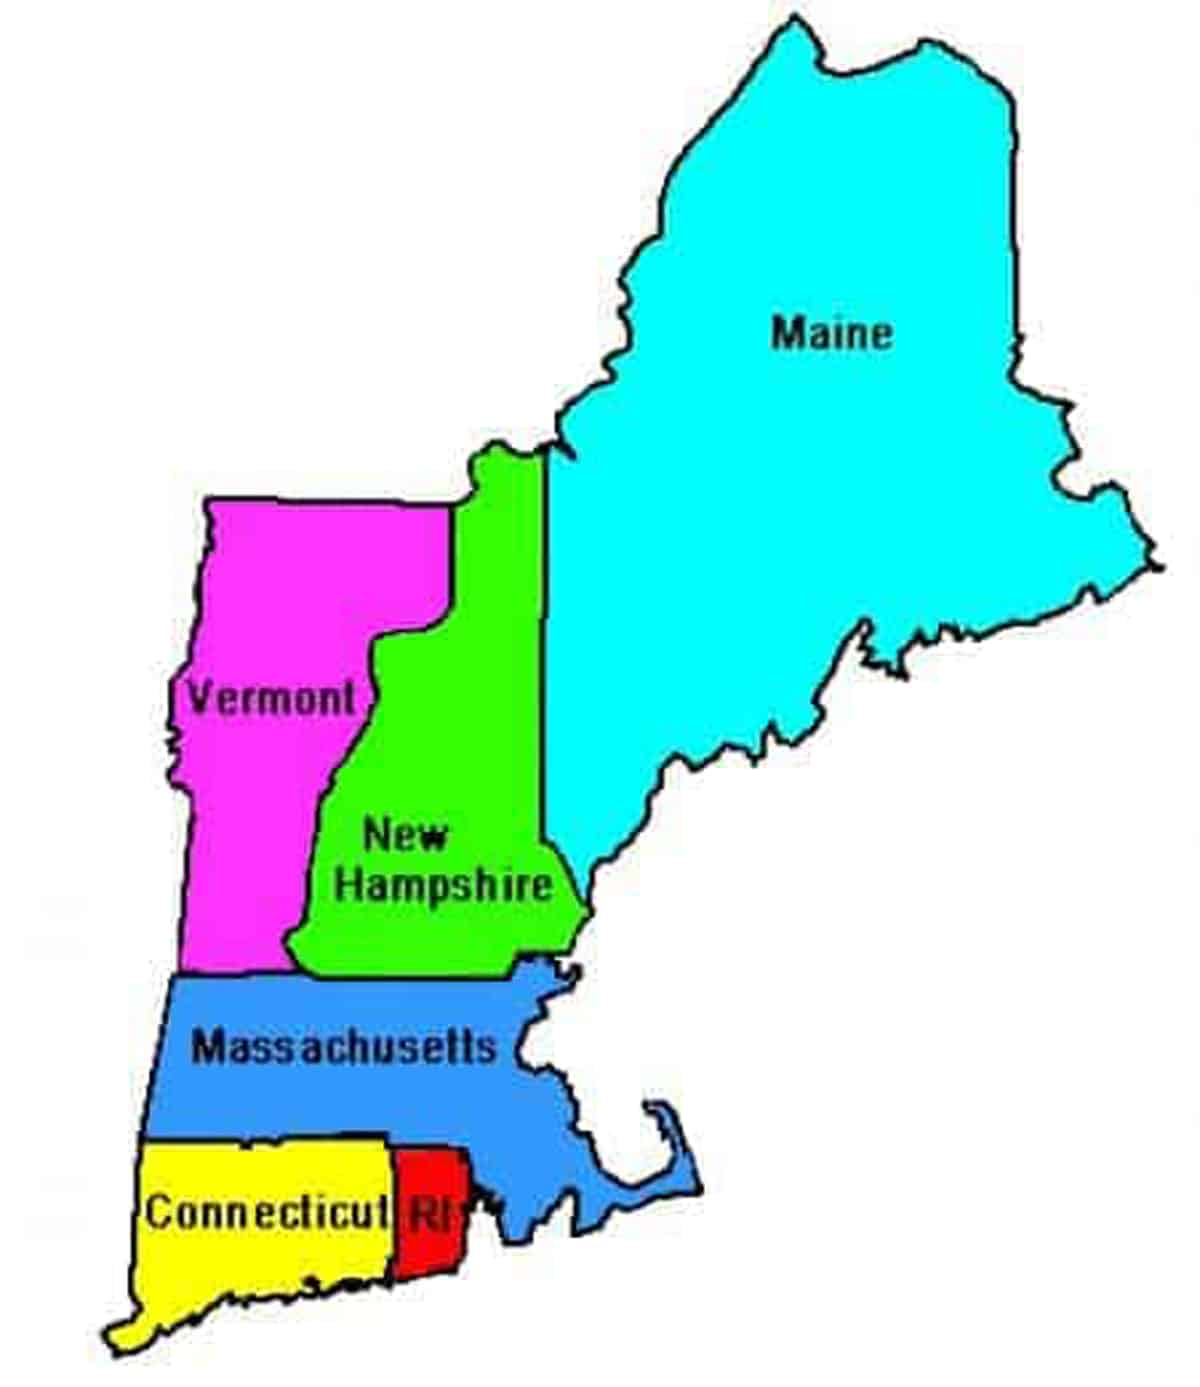 A map showing the states of New England.